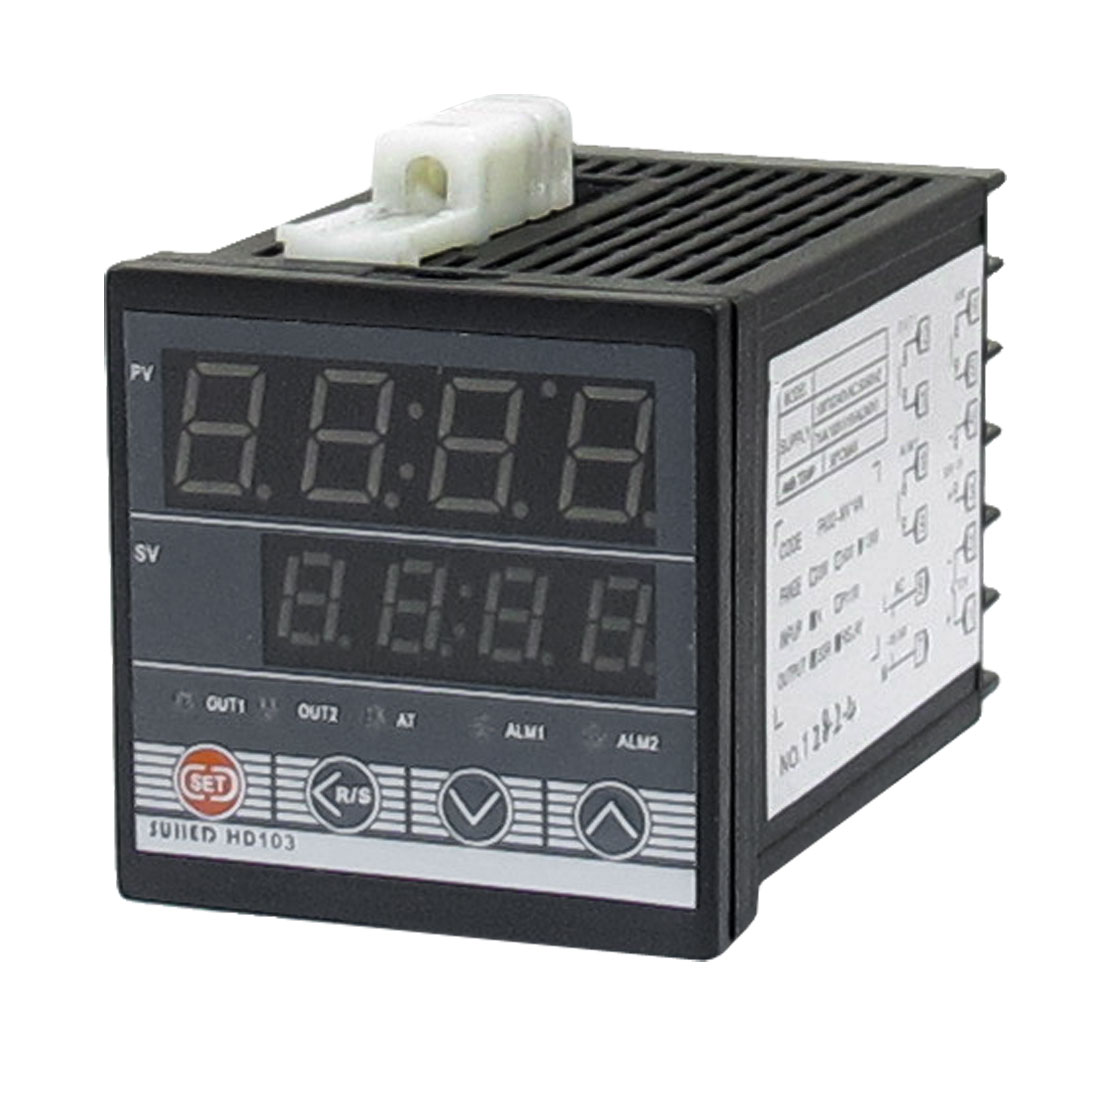 Alarm SSR Controller 9.8Ft Thermocouple Temperature Control Meter #6D715A